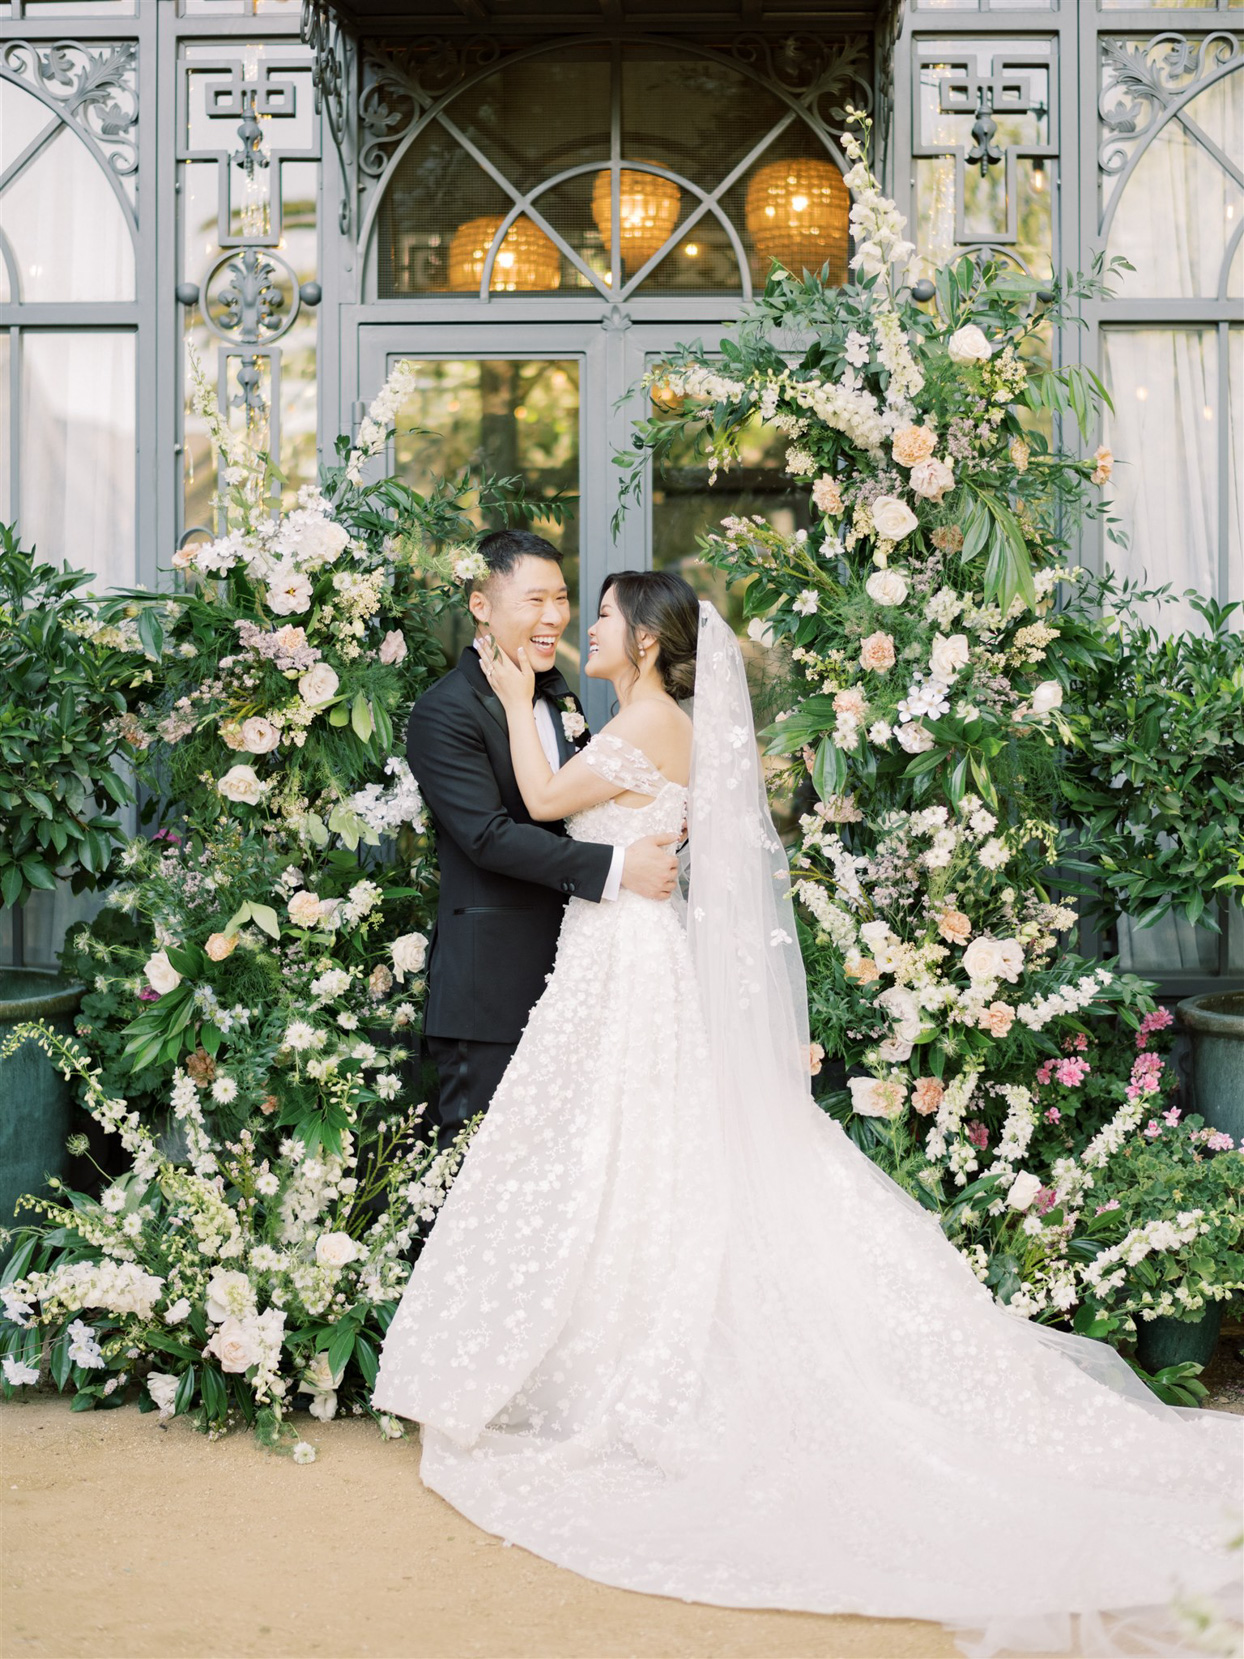 bride and groom smile amidst floral decor